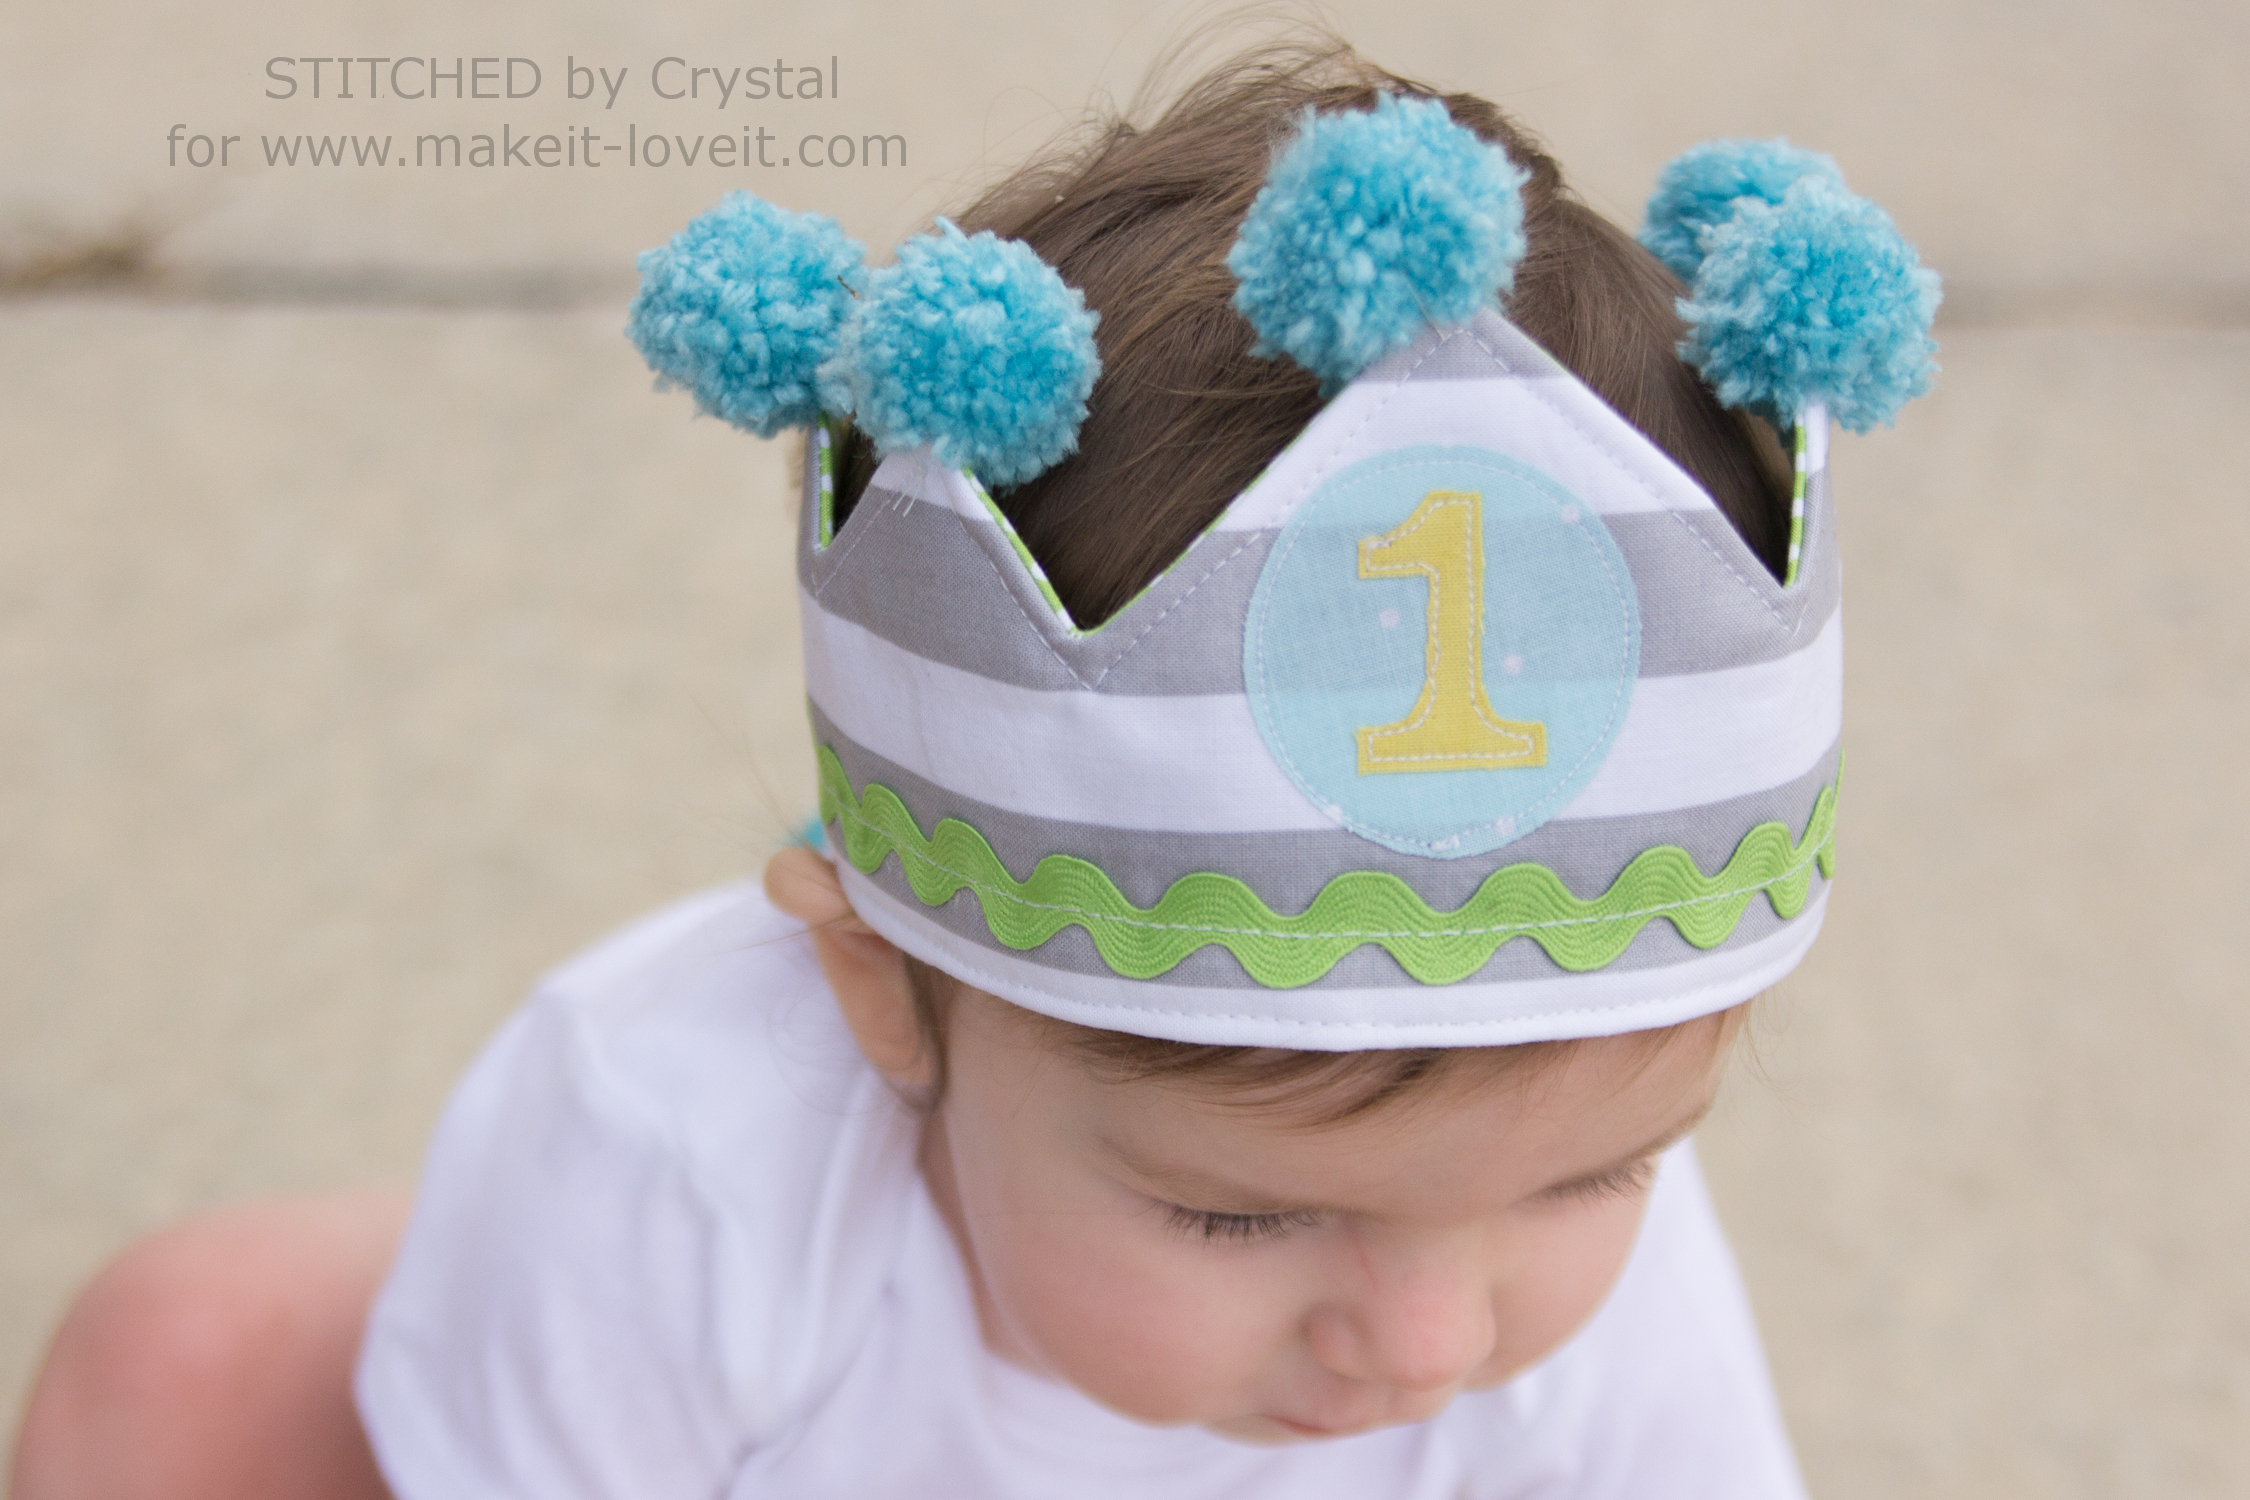 DIY Reversible Fabric Crowns...for Parties or Play! | via www.makeit-loveit.com